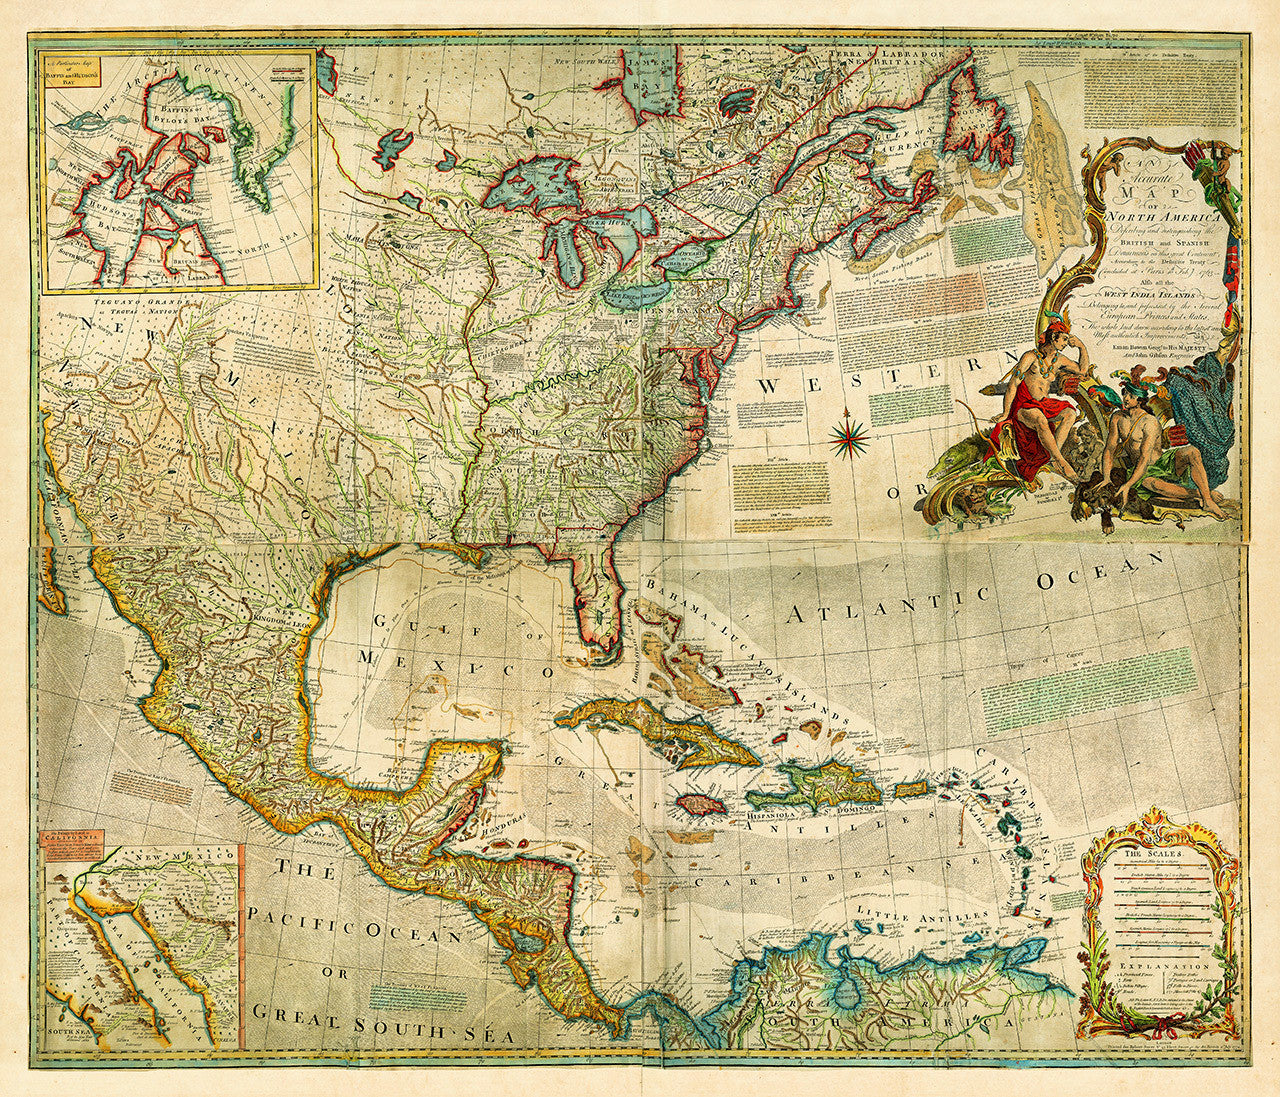 European claims in north america 1772 old map battlemaps north america 1772 caribbean european claims american revolutionary era map sciox Image collections